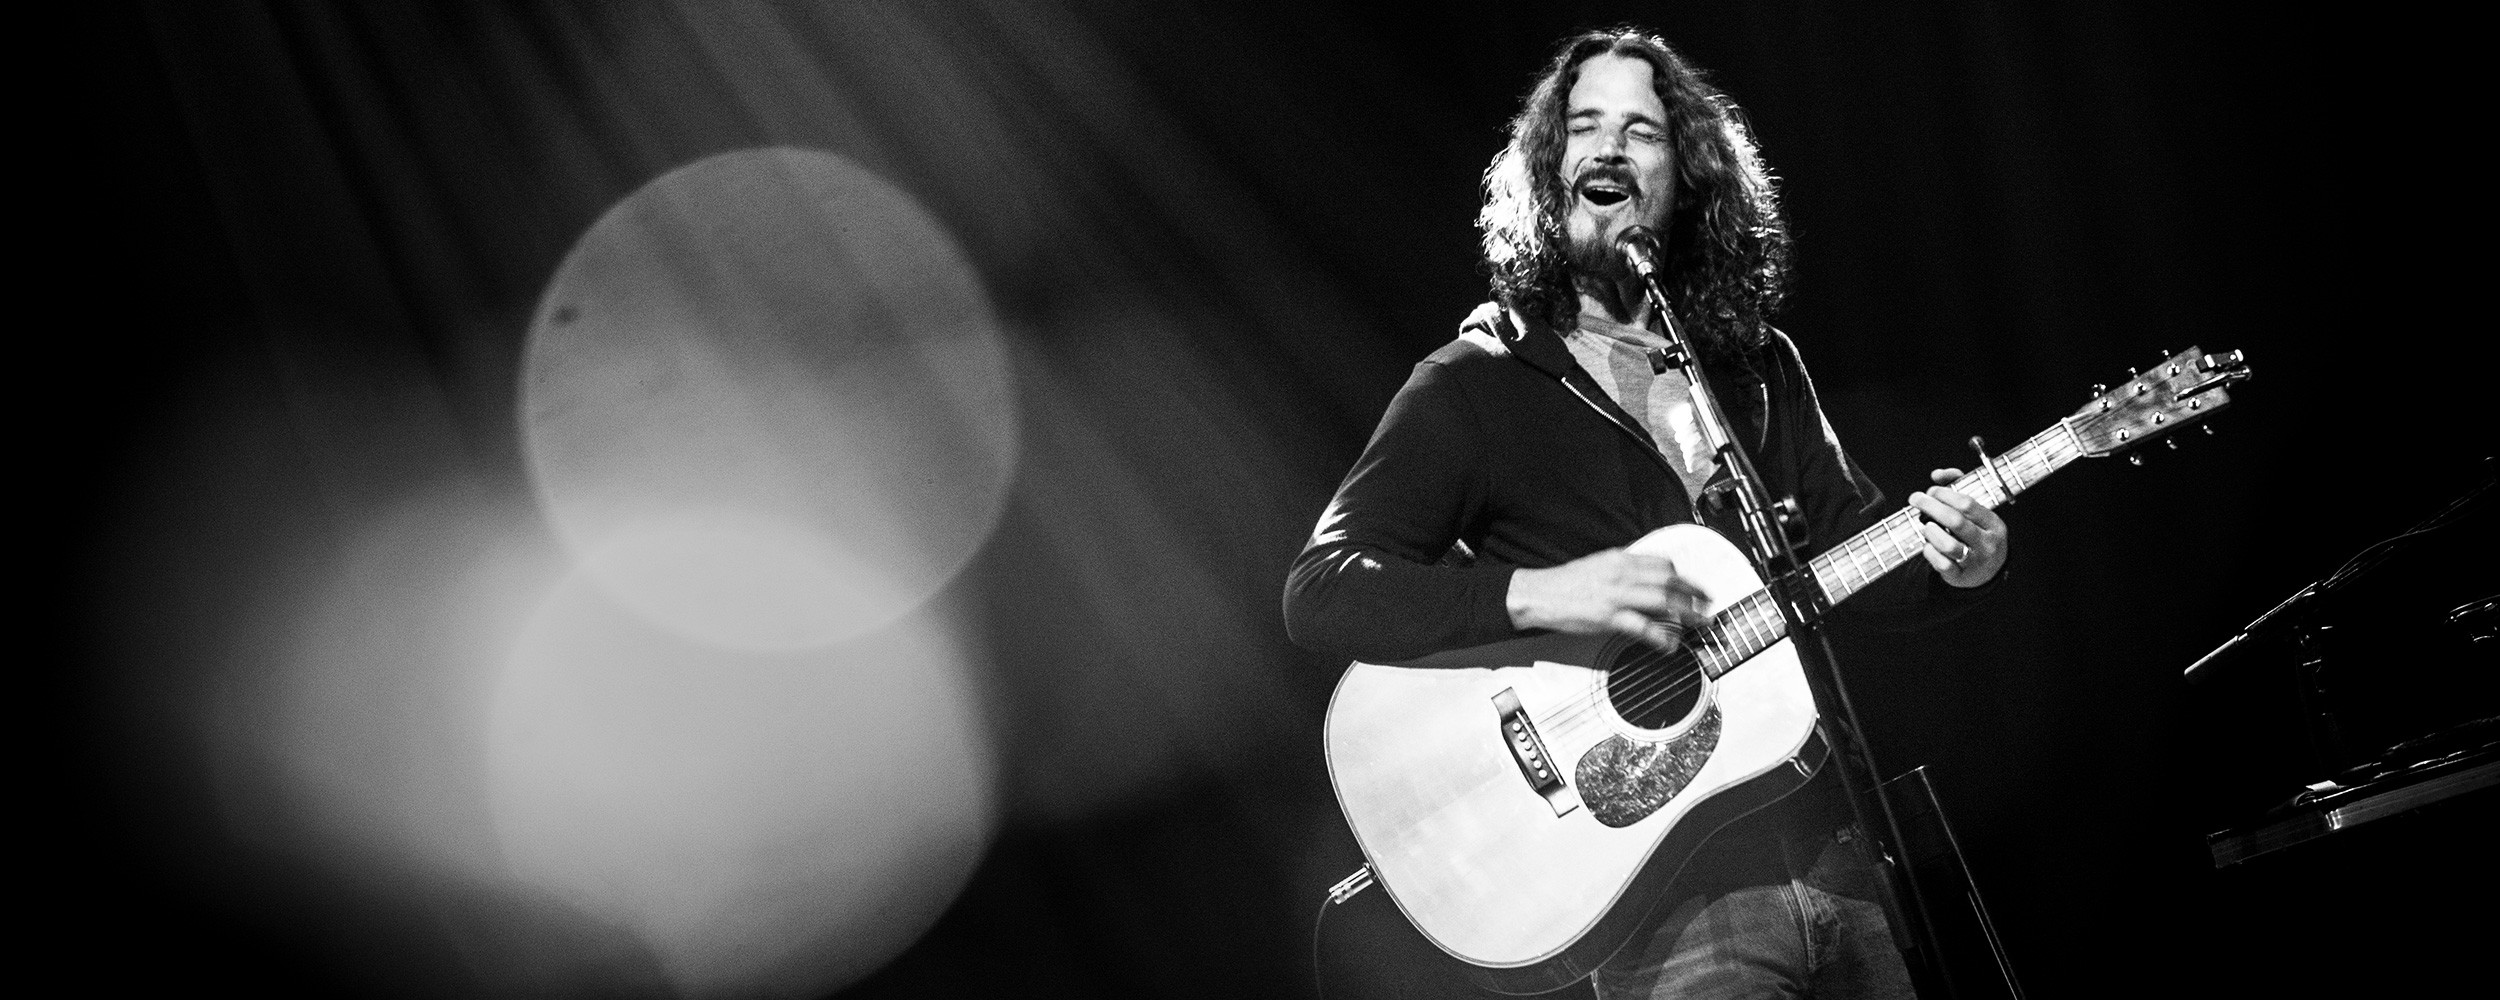 25 Years of Talking to Chris Cornell for <i>Spin</i>